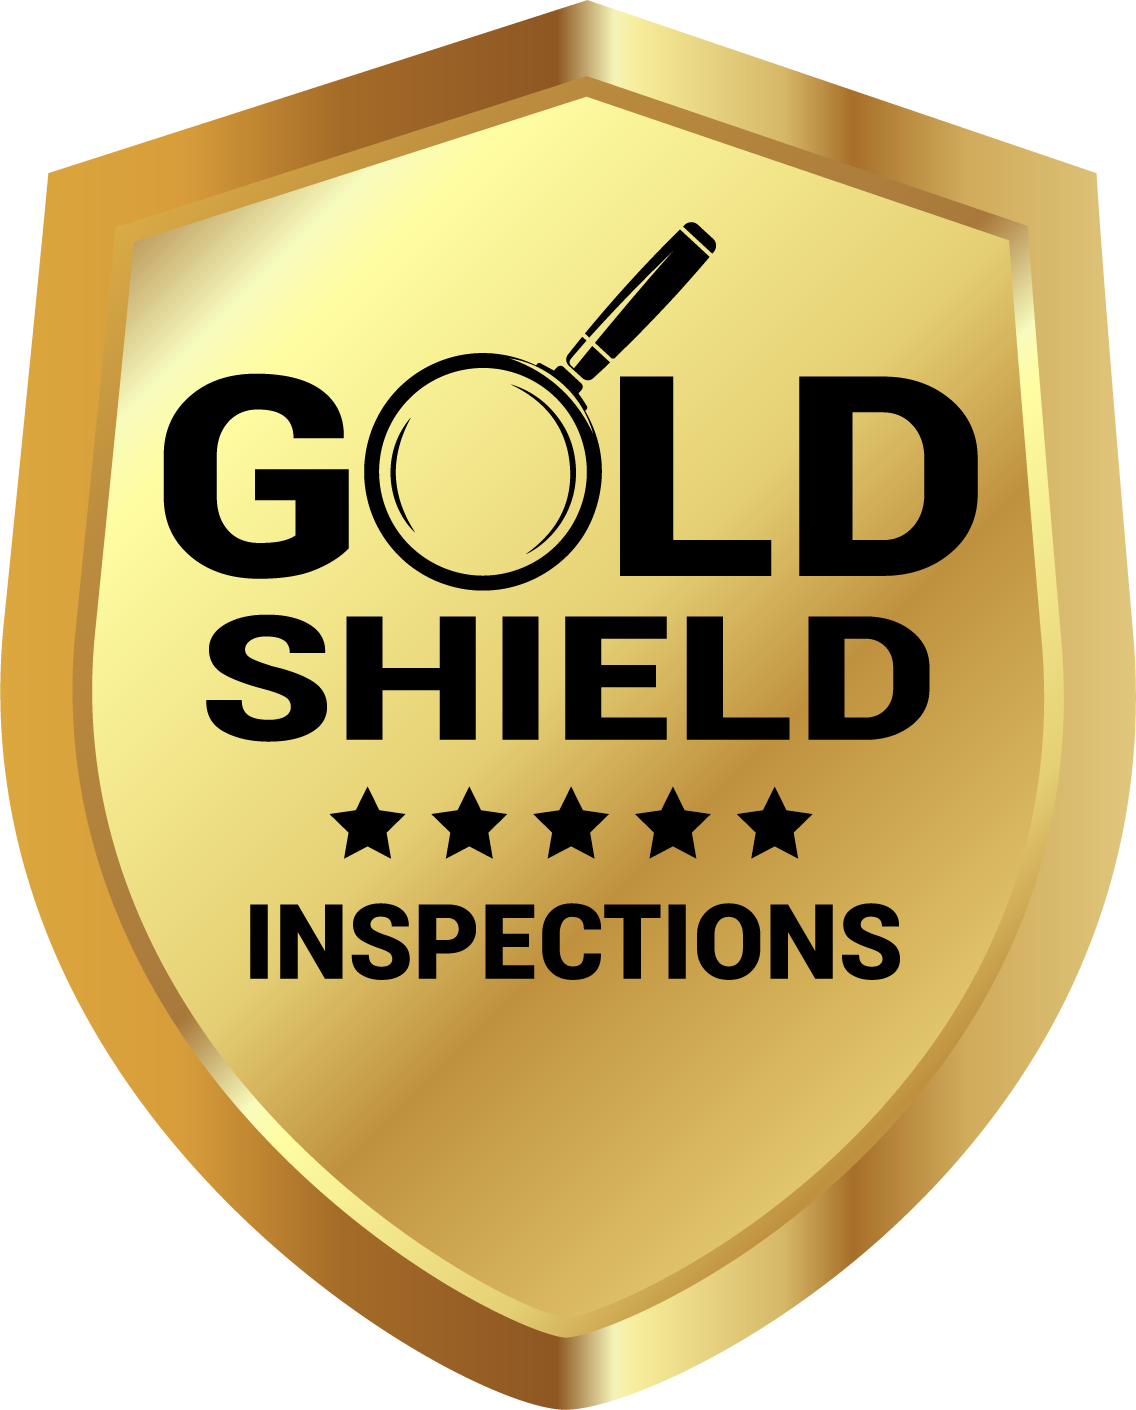 Gold Shield Inspections